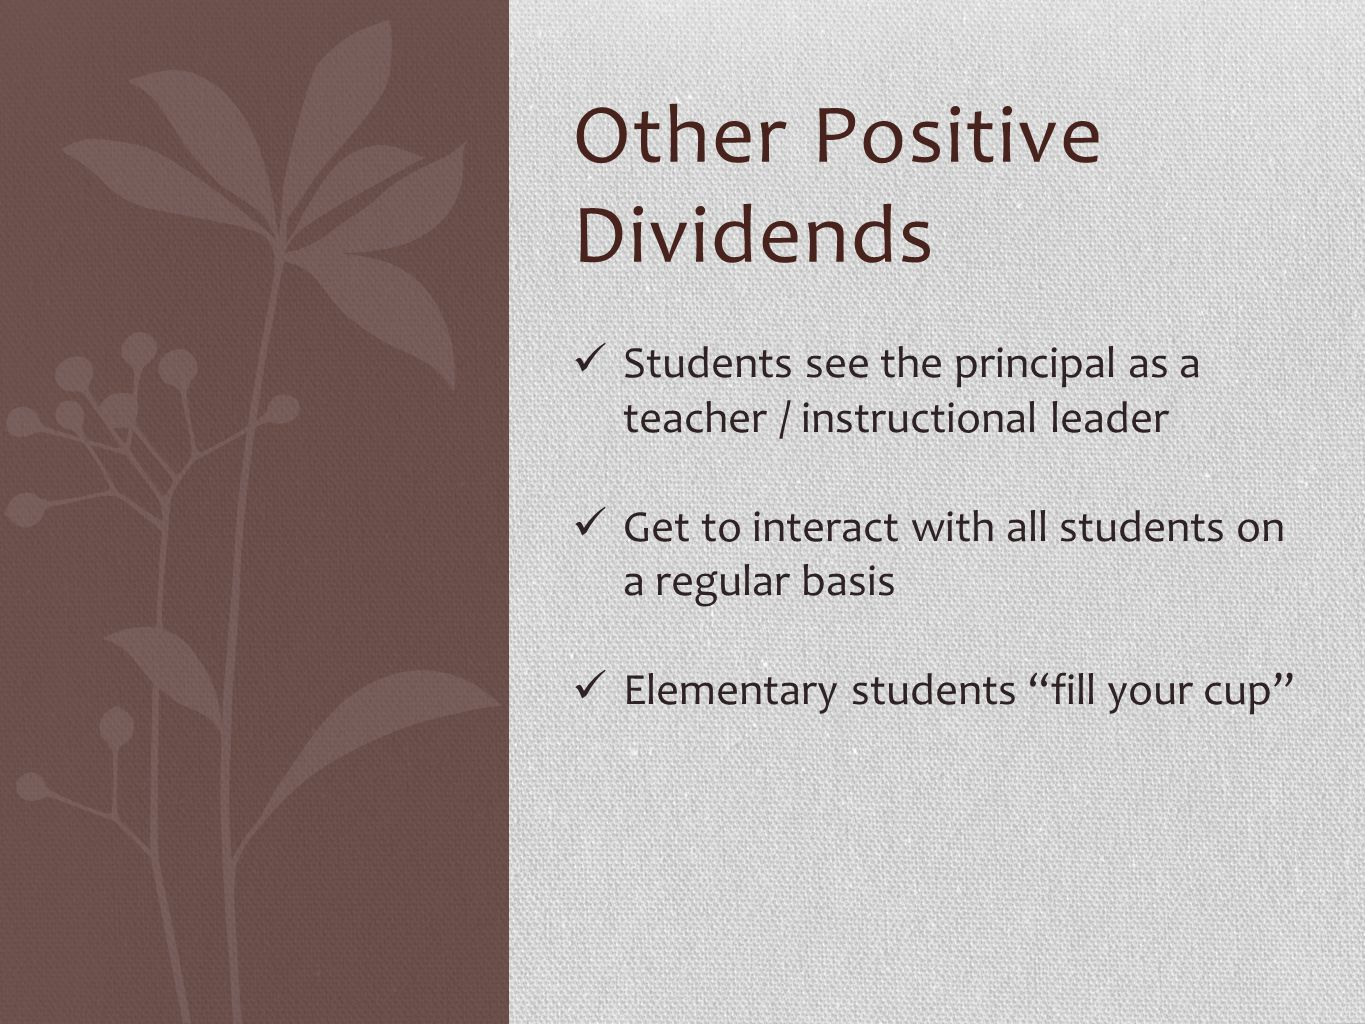 Other Positive Dividends Students see the principal as a teacher / instructional leader Get to interact with all students on a regular basis Elementar